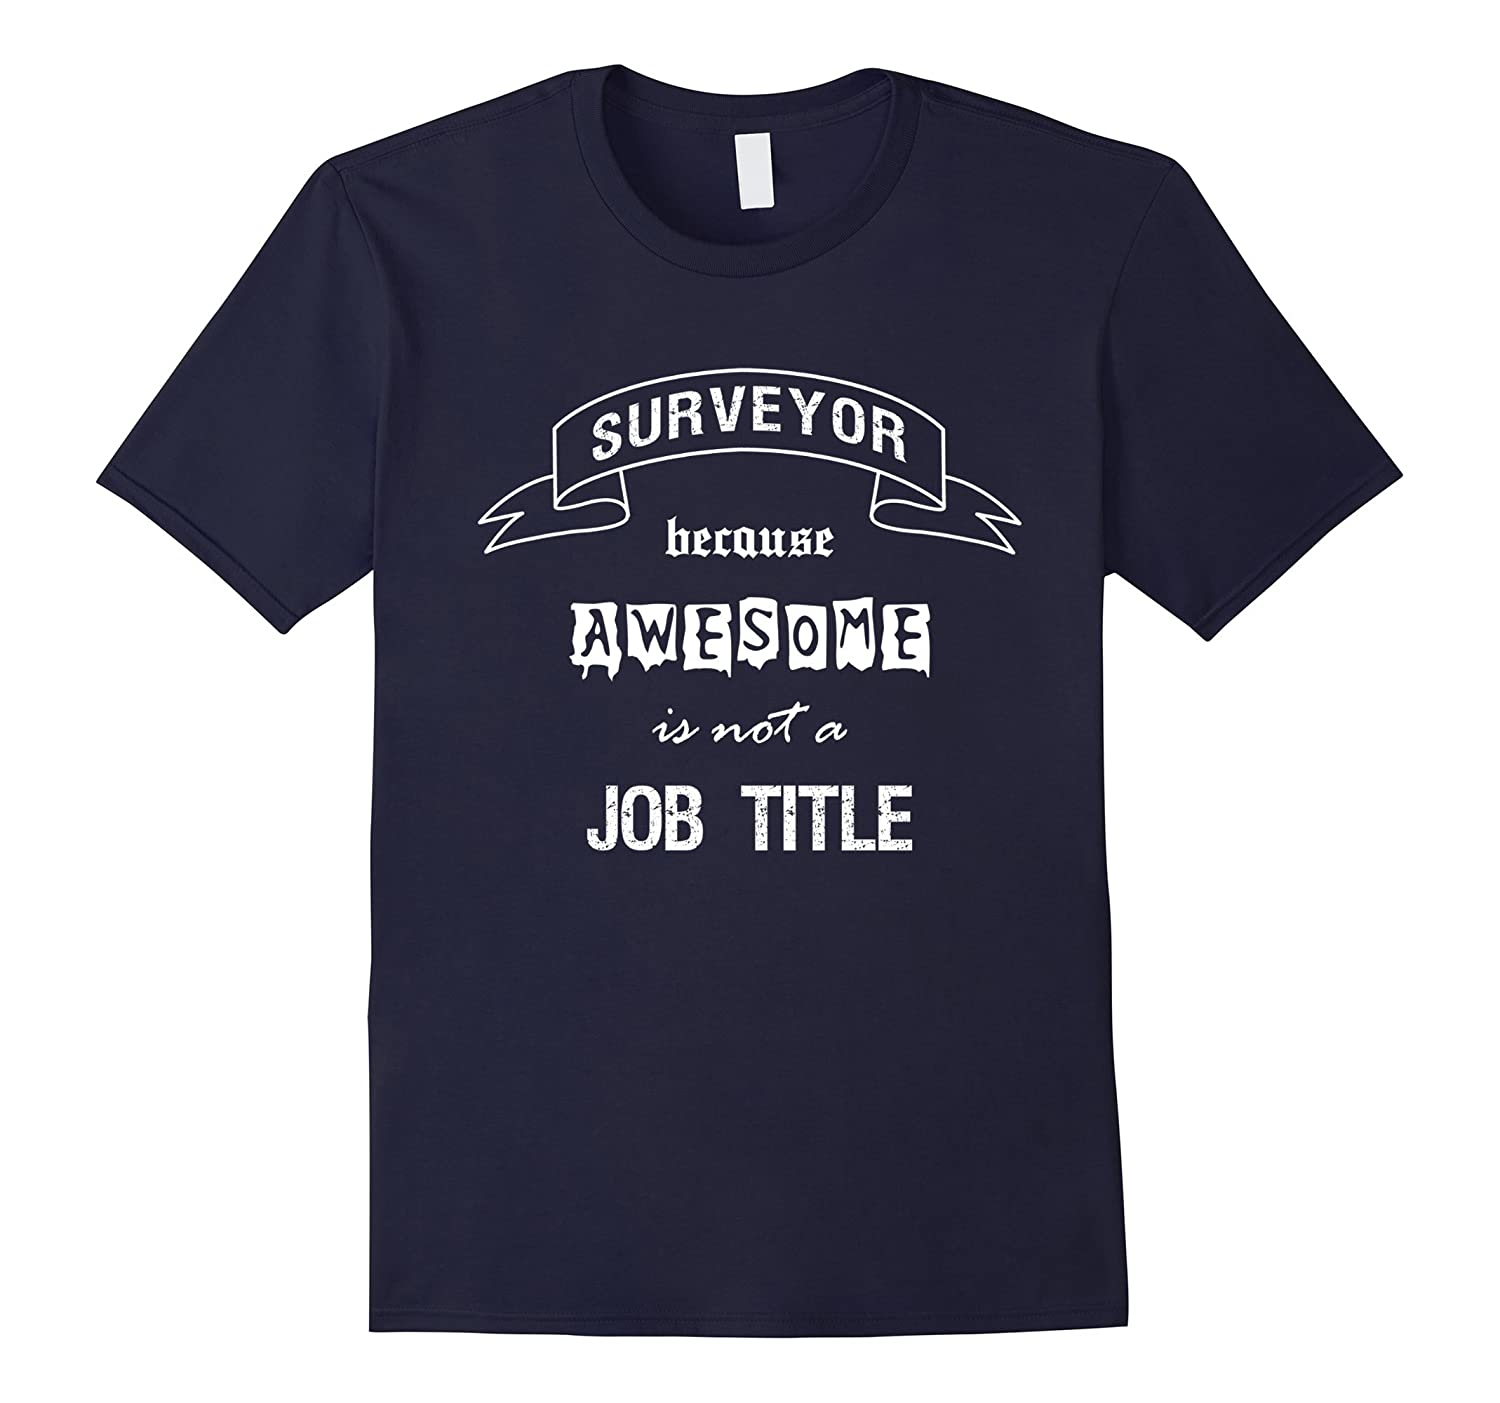 Surveyor Because Awesome Is Not A Job Title Funny T Shirt-TD